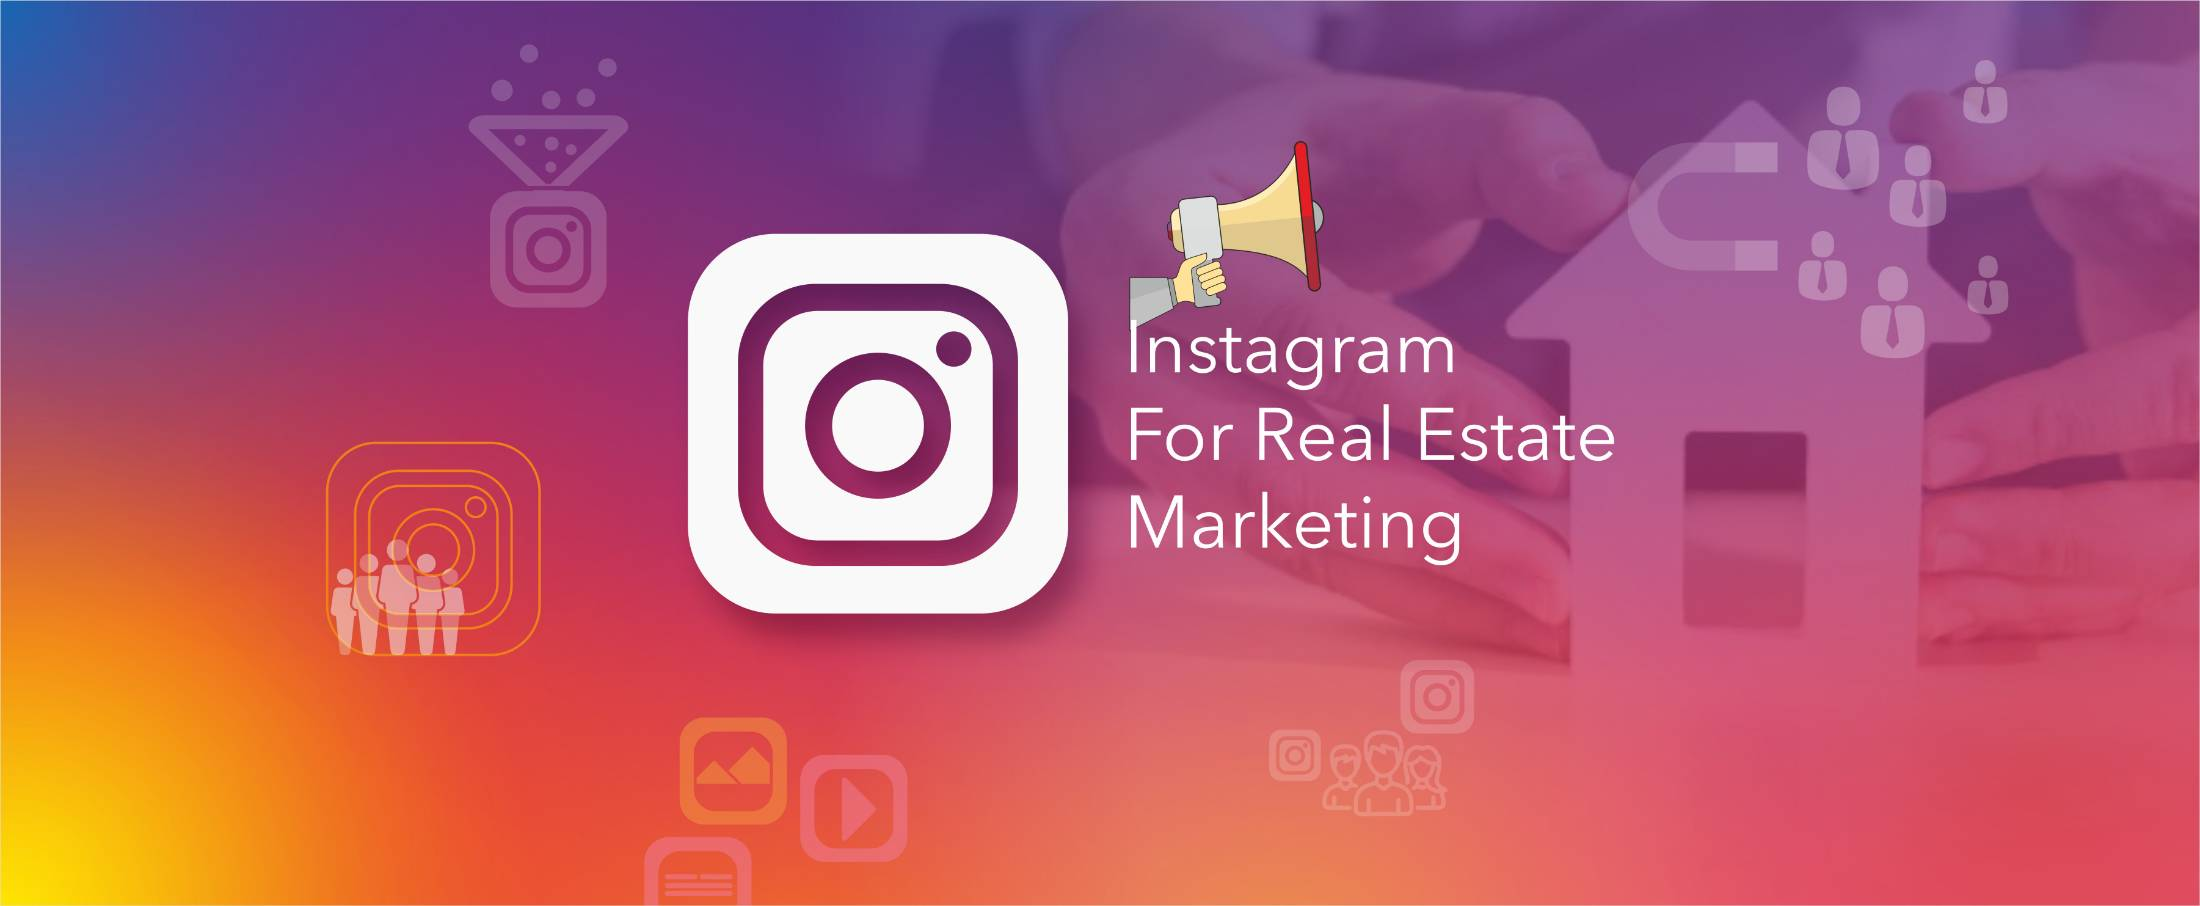 Instagram for Real Estate Marketing